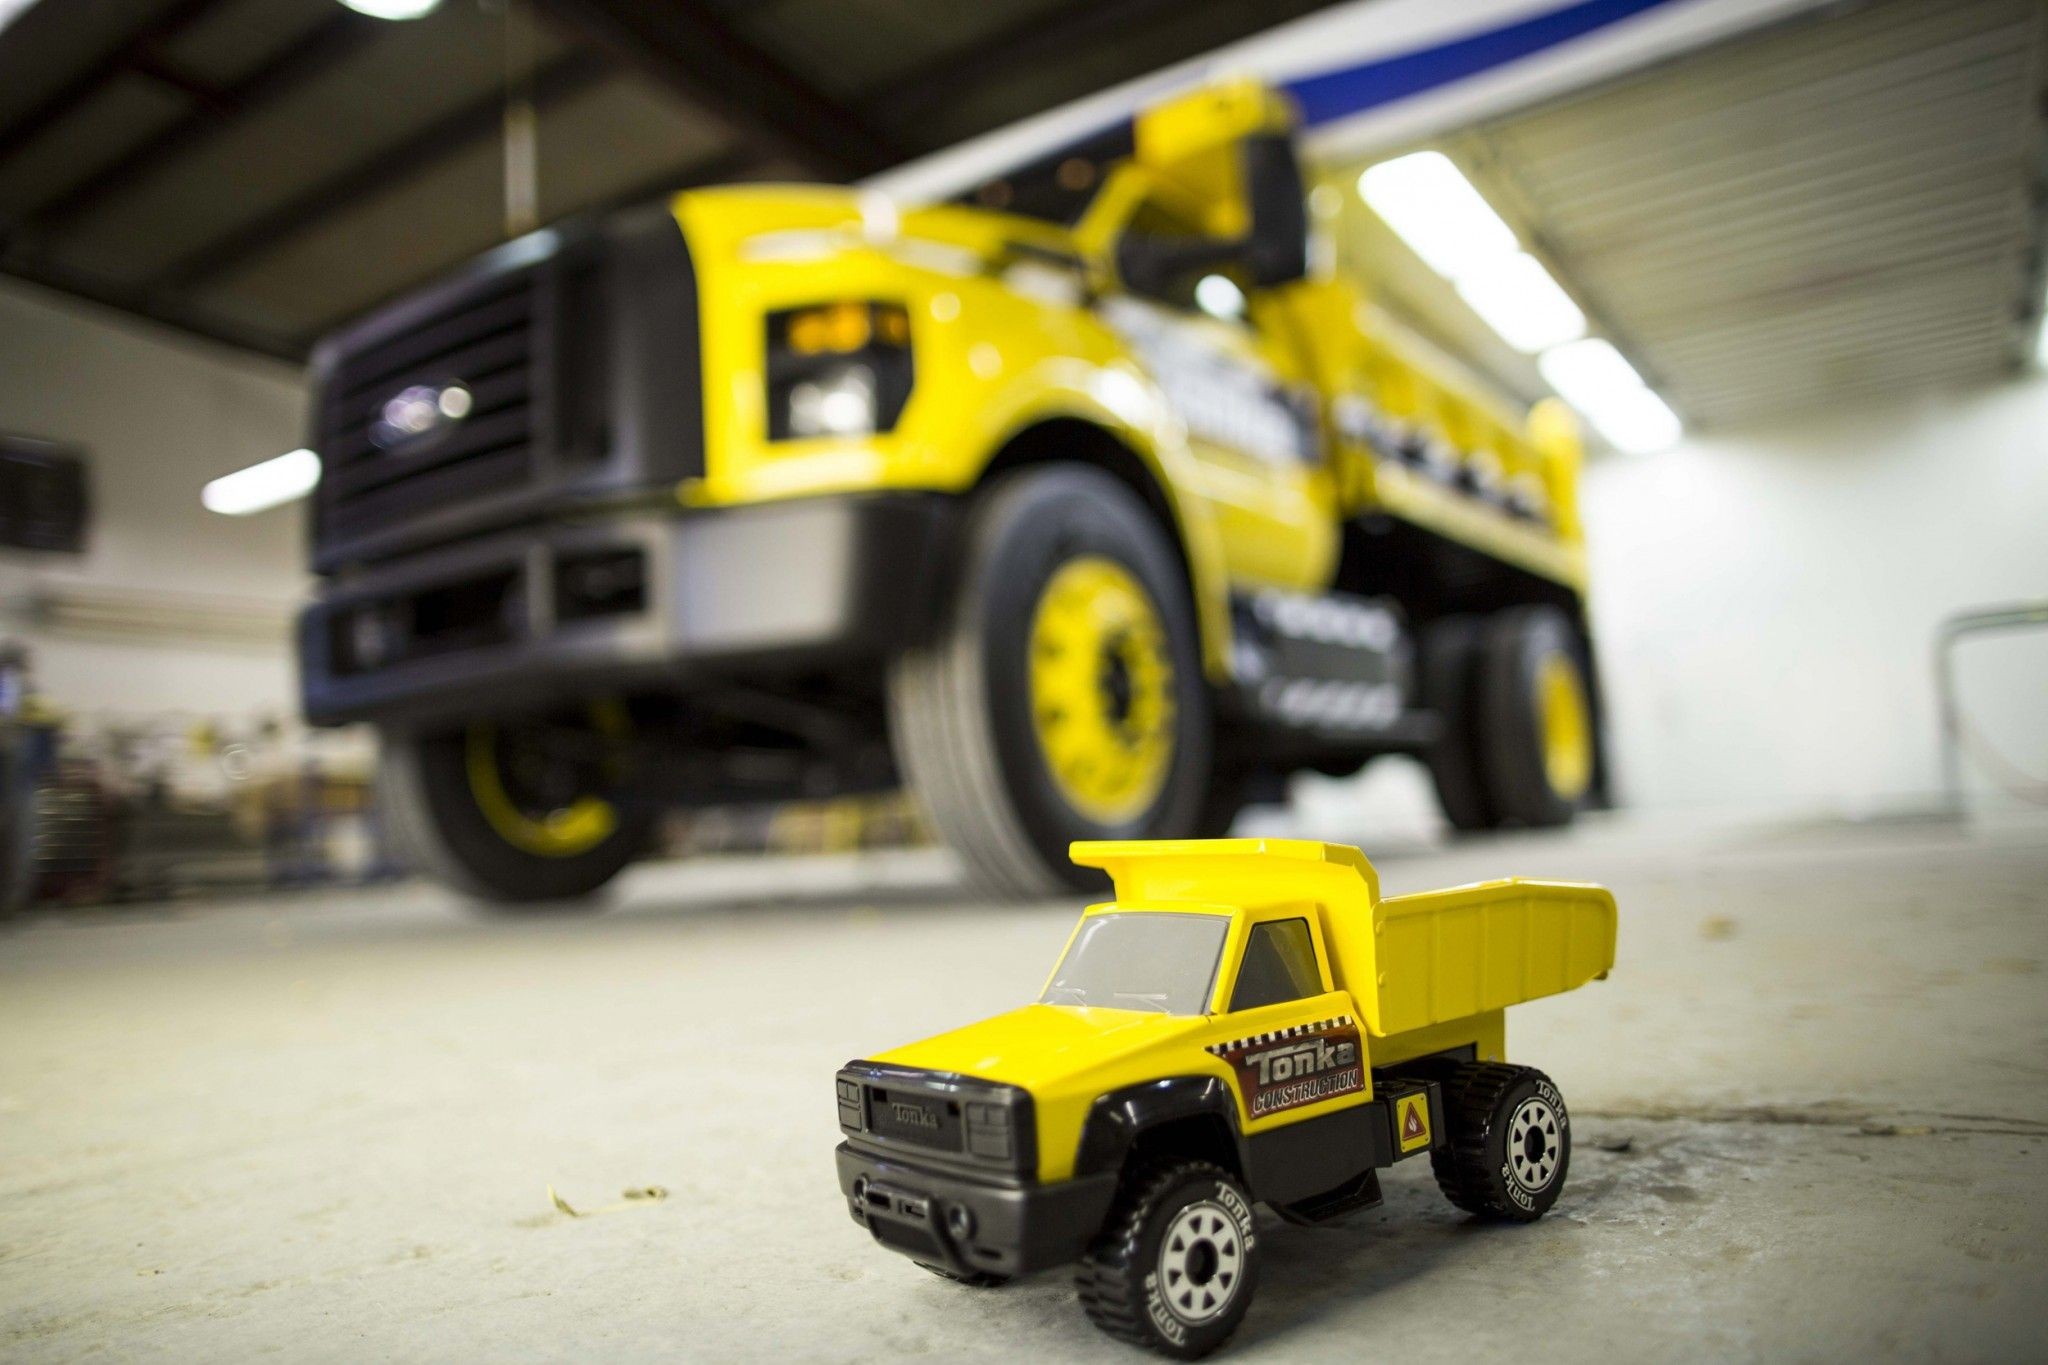 Dialing up the sandbox memories ford unveiled a 2016 ford tonka truck at the 2015 national truck equipment association s work truck show in indianapolis